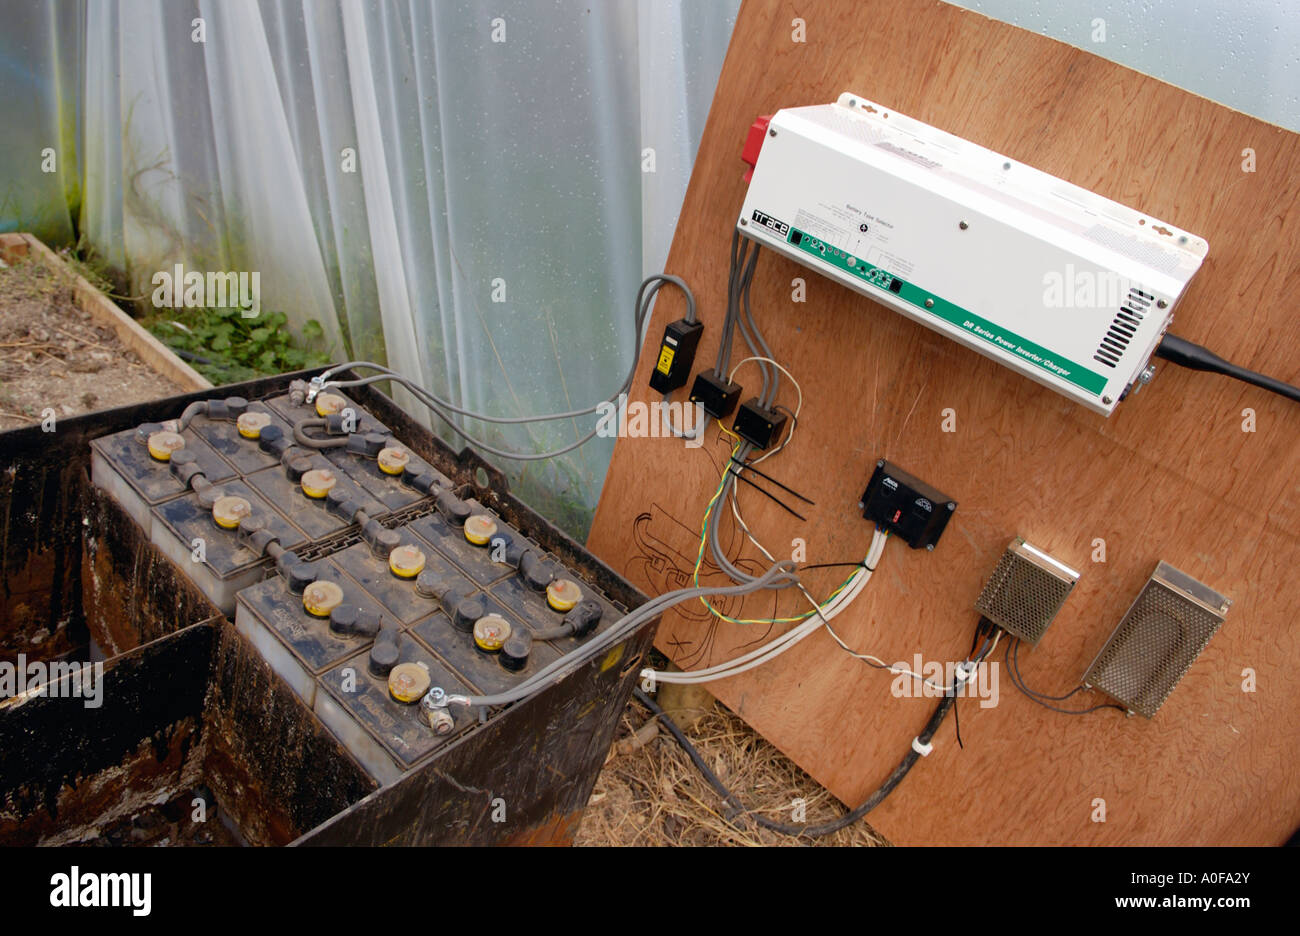 Solar Inverter Stock Photos Images Alamy Home Power Supply Portable Made System Using For Producing Electricity On Organic Hill Farm Uk Battery And